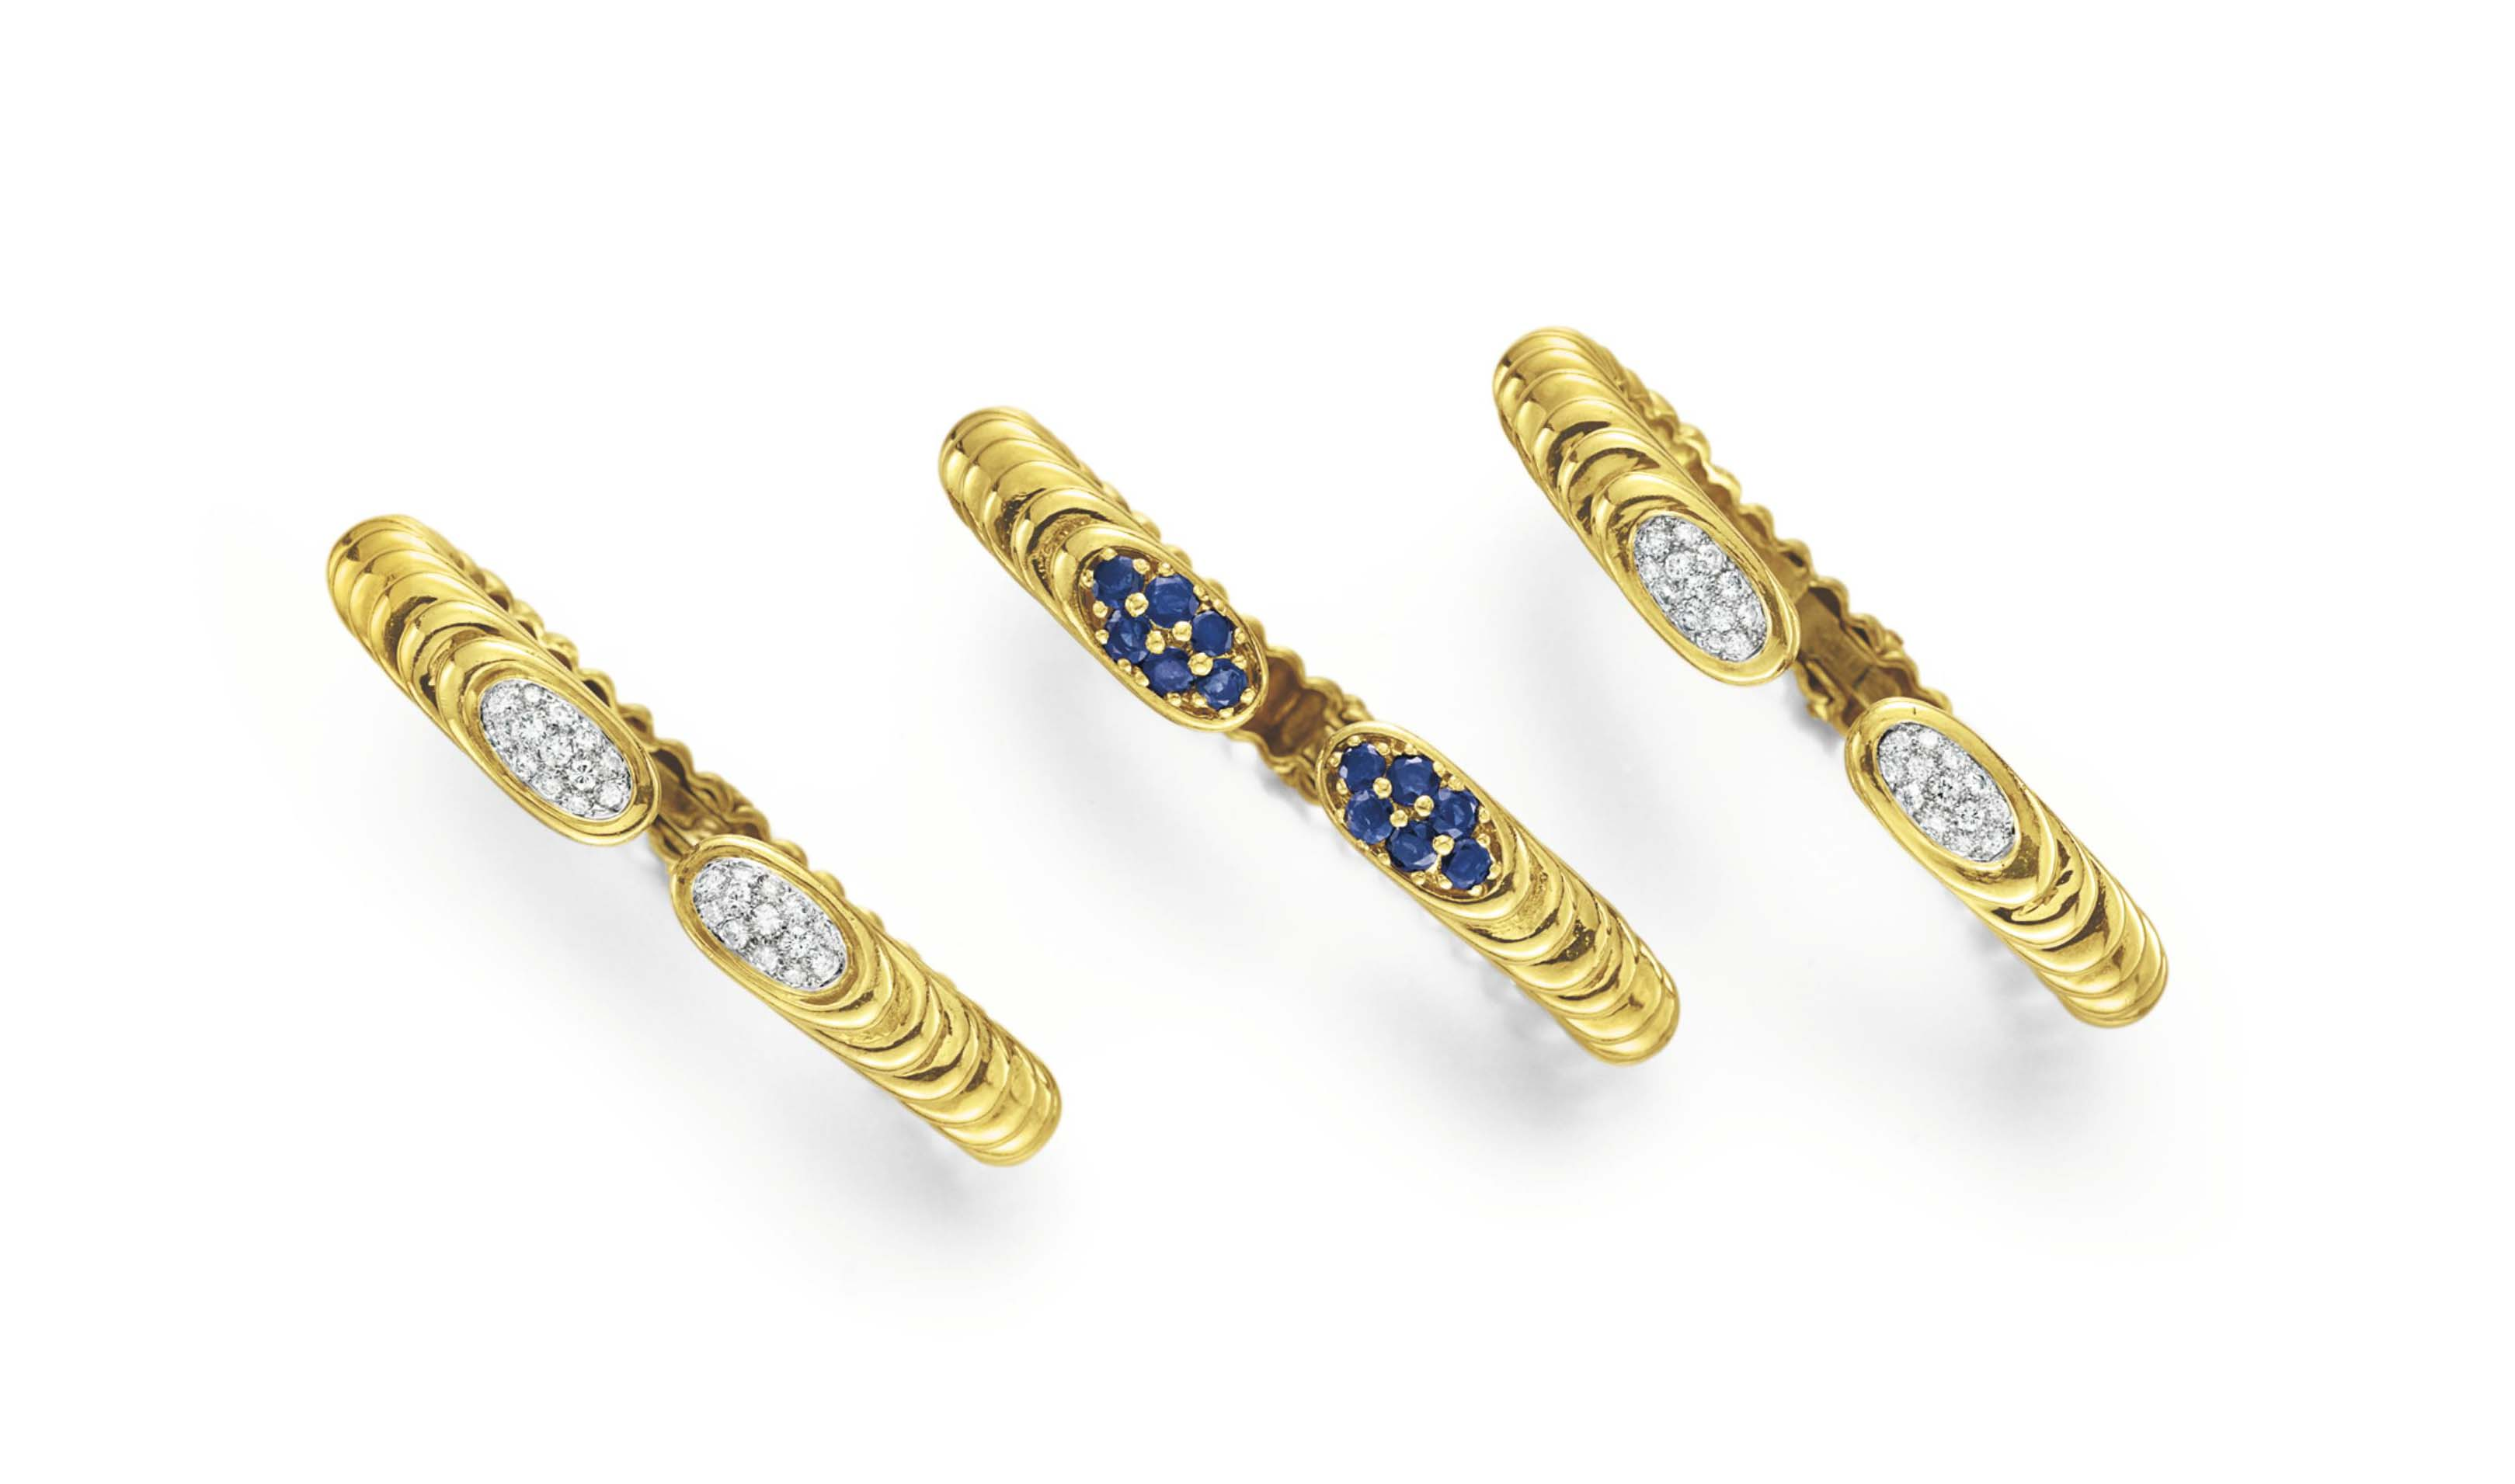 THREE DIAMOND, SAPPHIRE AND GOLD CUFF BRACELETS, BY WANDER